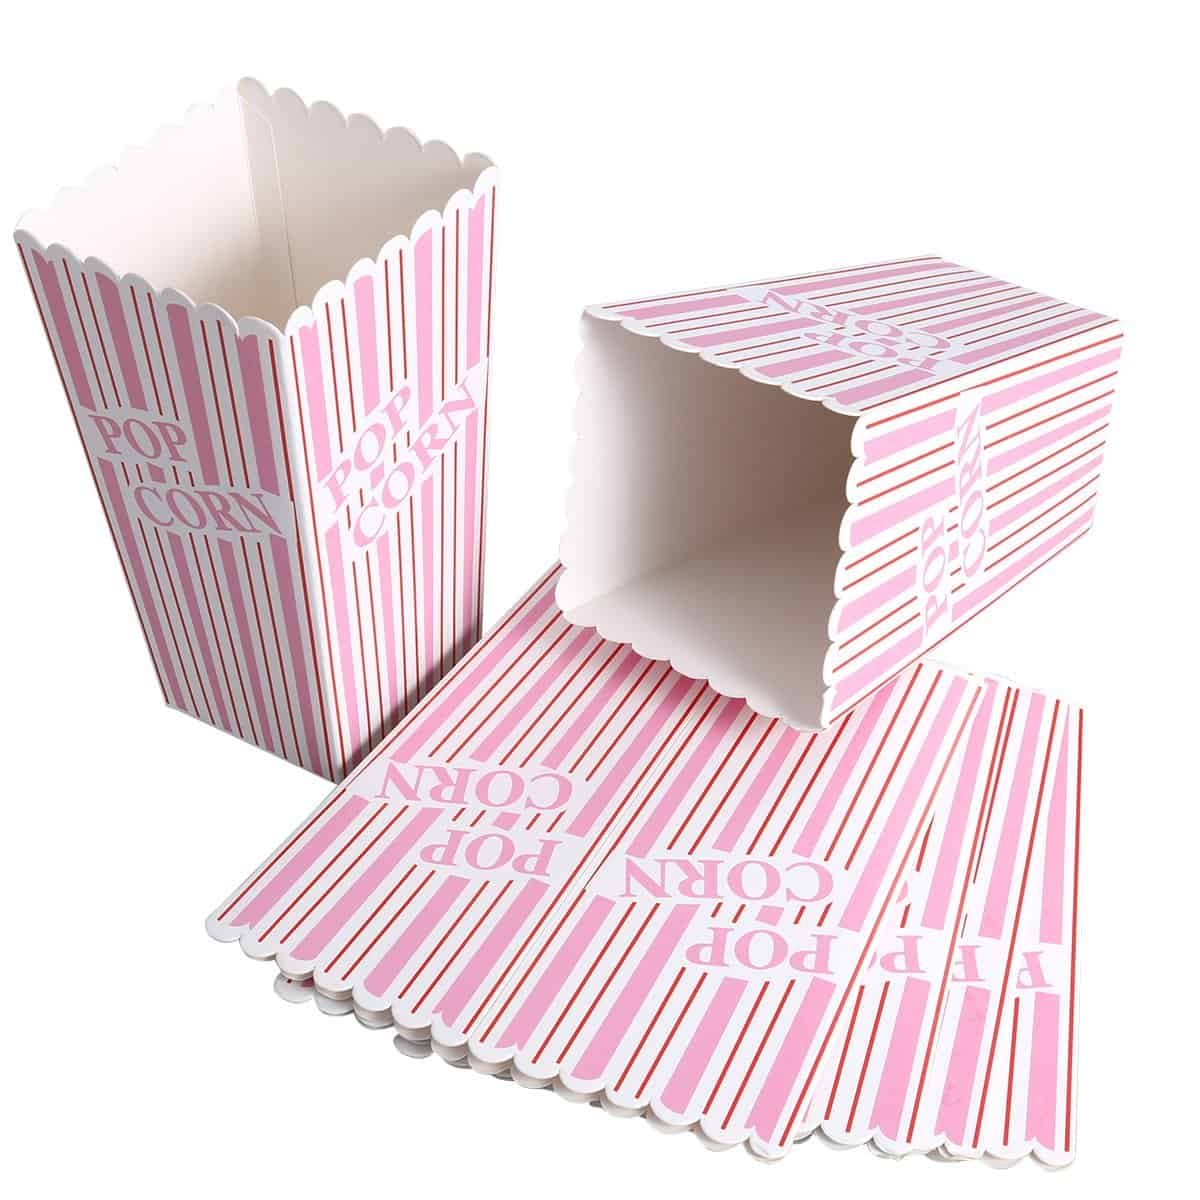 Custom Popcorn Packaging Boxes for Making your Organic Popcorn